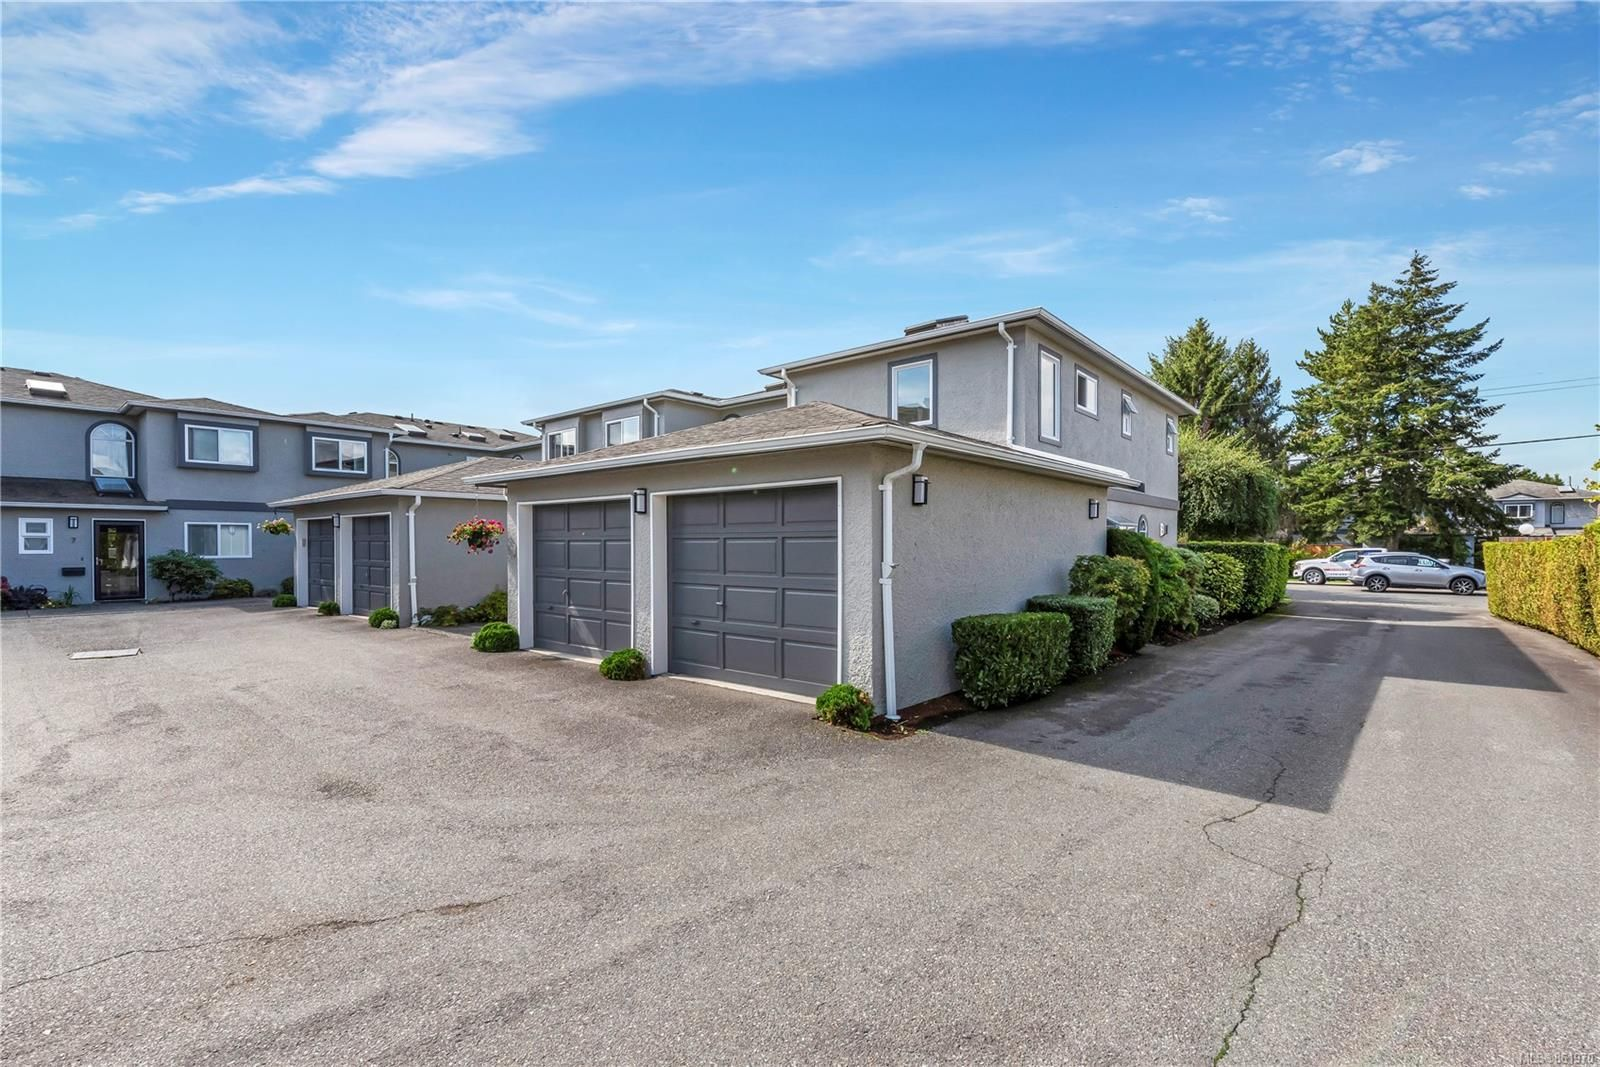 Main Photo: 1 9855 Resthaven Dr in : Si Sidney North-East Row/Townhouse for sale (Sidney)  : MLS®# 861970